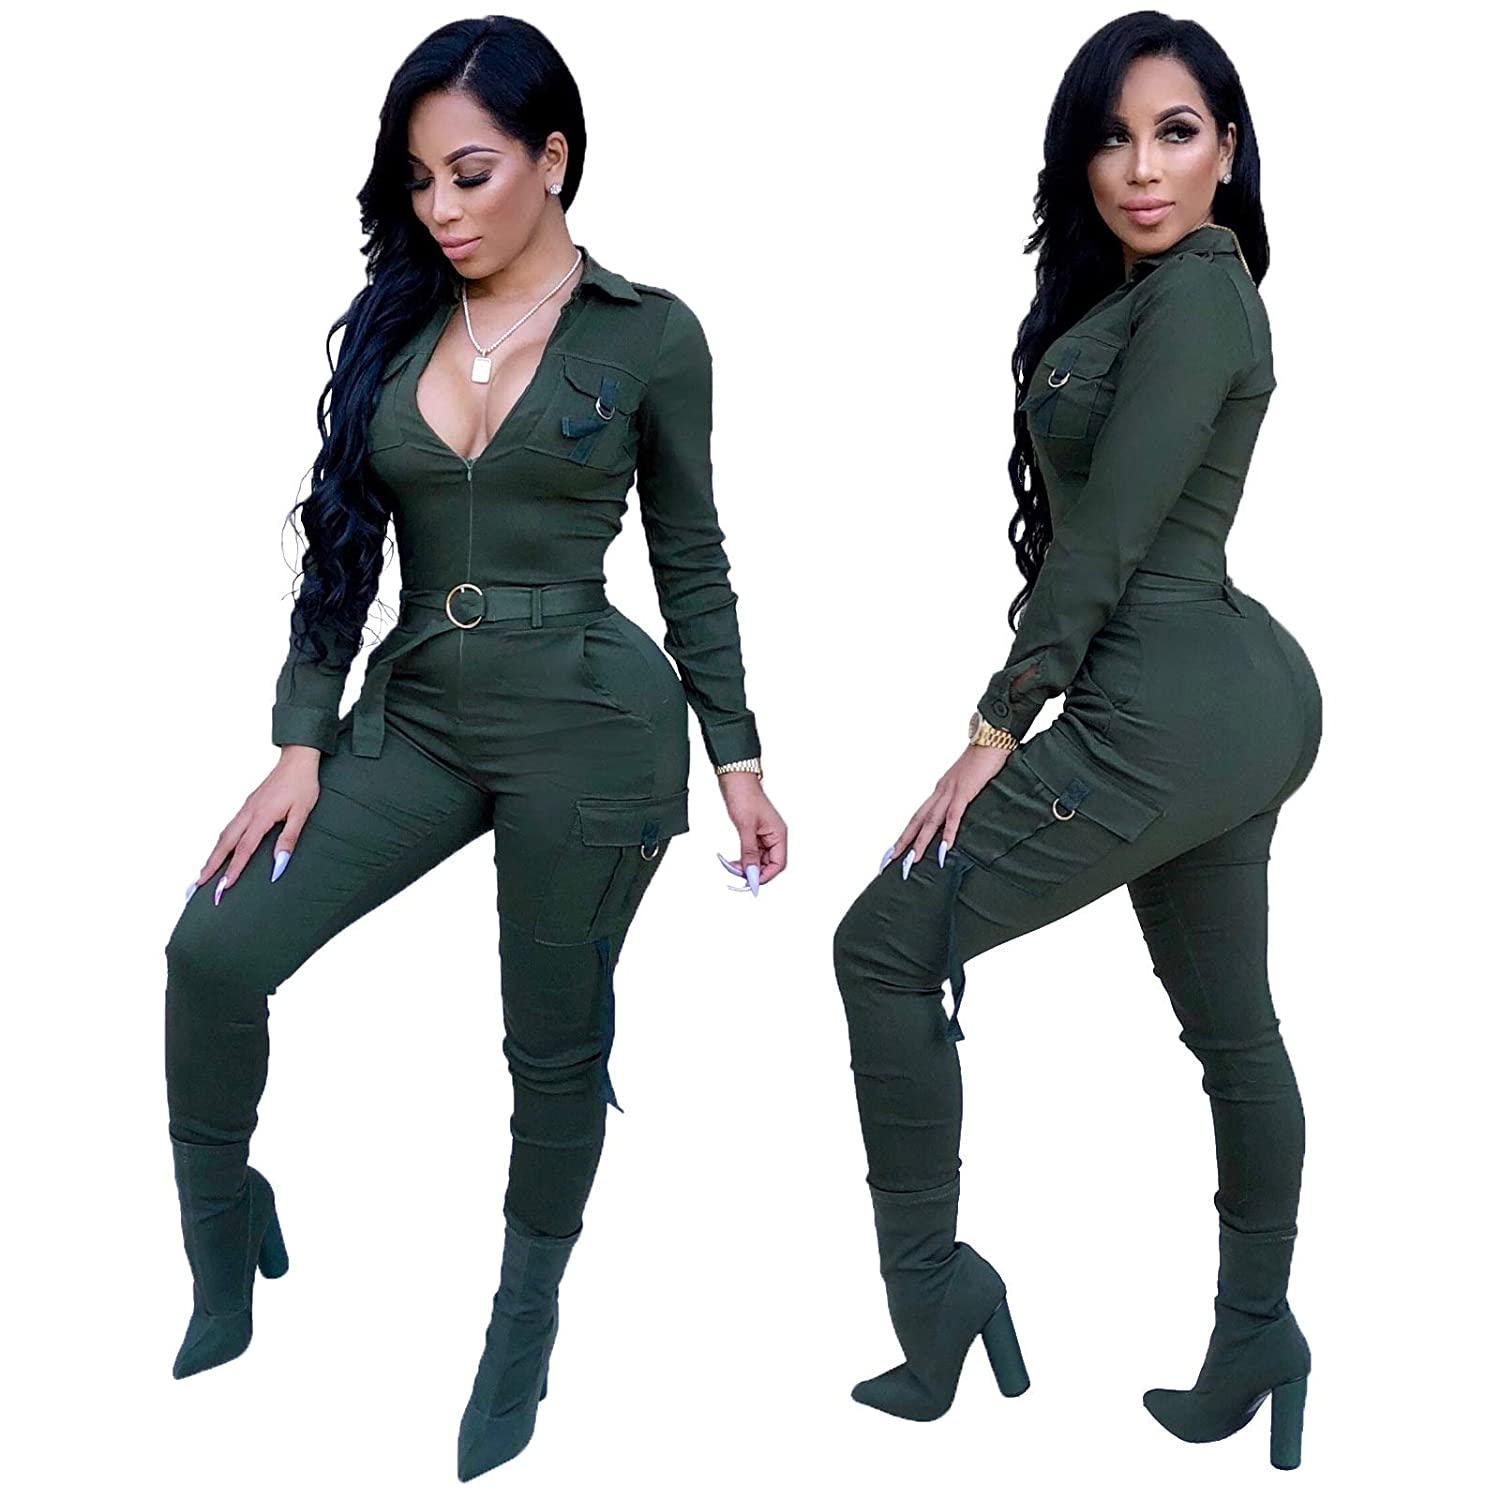 00eeb4a2e5 Amazon.com  Long Sleeve Bodycon Jumpsuits for Women Party Night Sexy  Clubwear Solid Long Pants Rompers Plus Size  Clothing